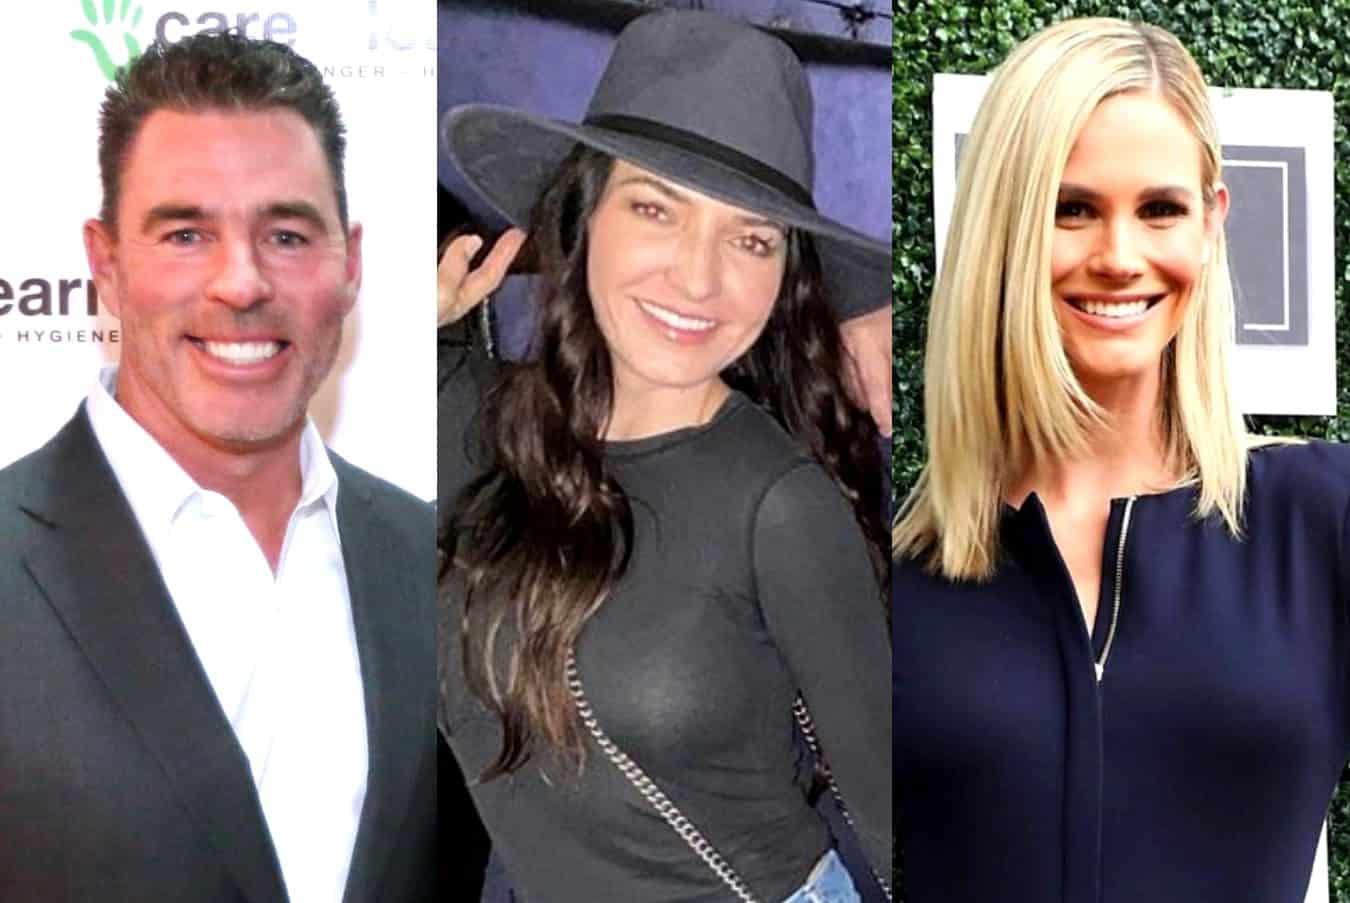 PHOTOS: Jim Edmonds' Girlfriend Kortnie O'Connor Posts Photos of Herself and His Kids With Meghan King Edmonds, Plus Meghan Shares Emotional Blog Post About Parenting Struggles